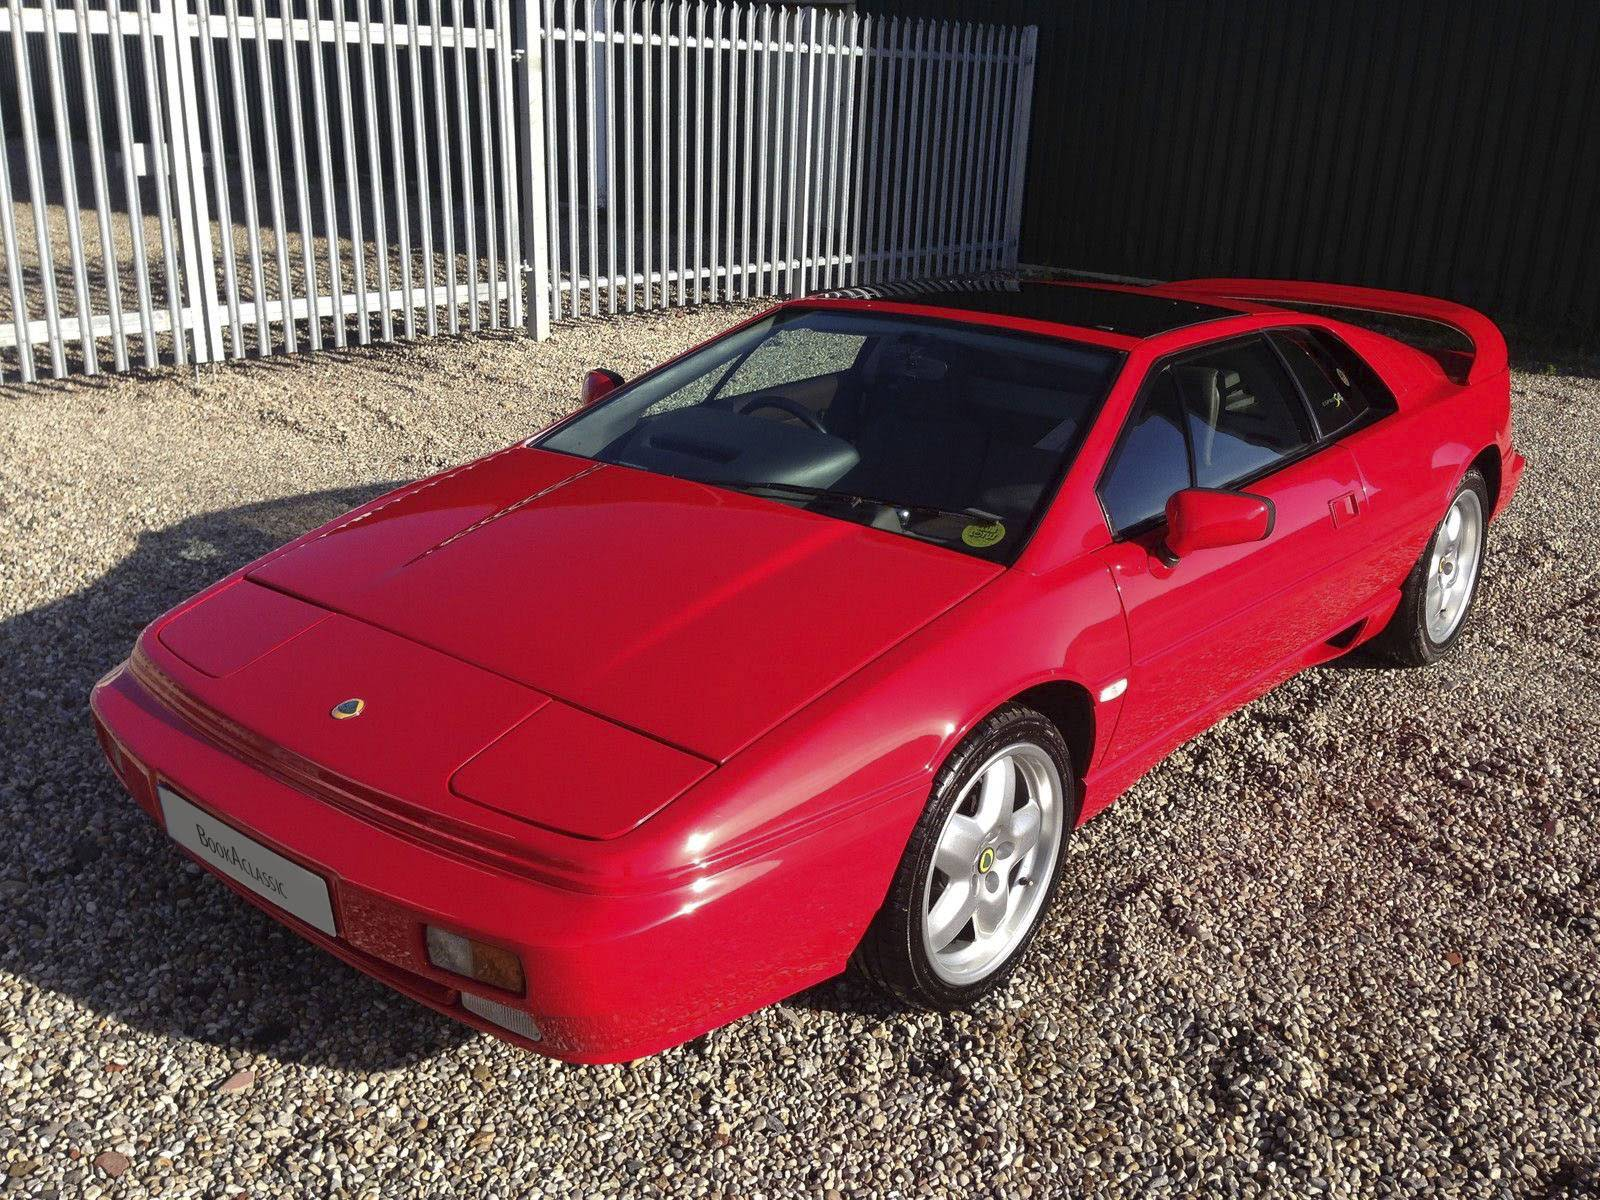 lotus esprit s4 2 2 turbo x180 for hire in tullamore bookaclassic. Black Bedroom Furniture Sets. Home Design Ideas